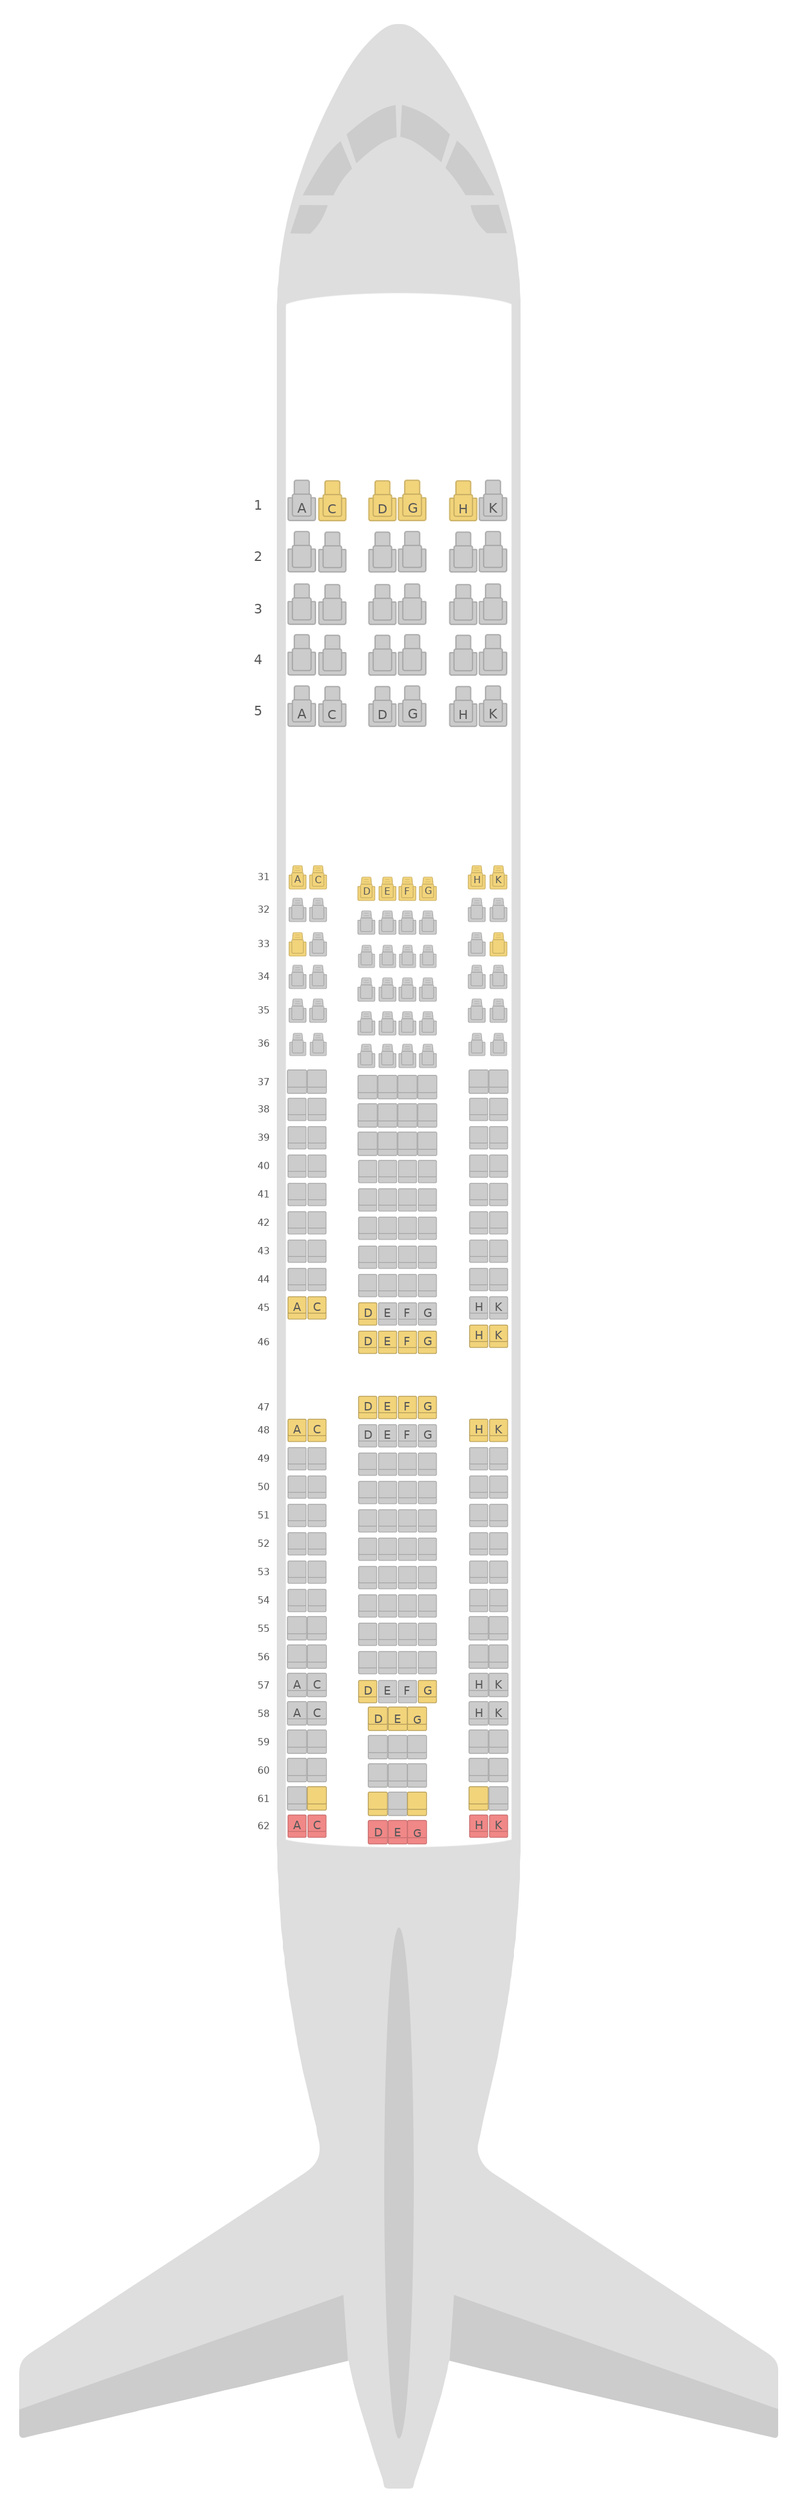 Seat Map China Southern Airlines Airbus A330-300 (333) v5